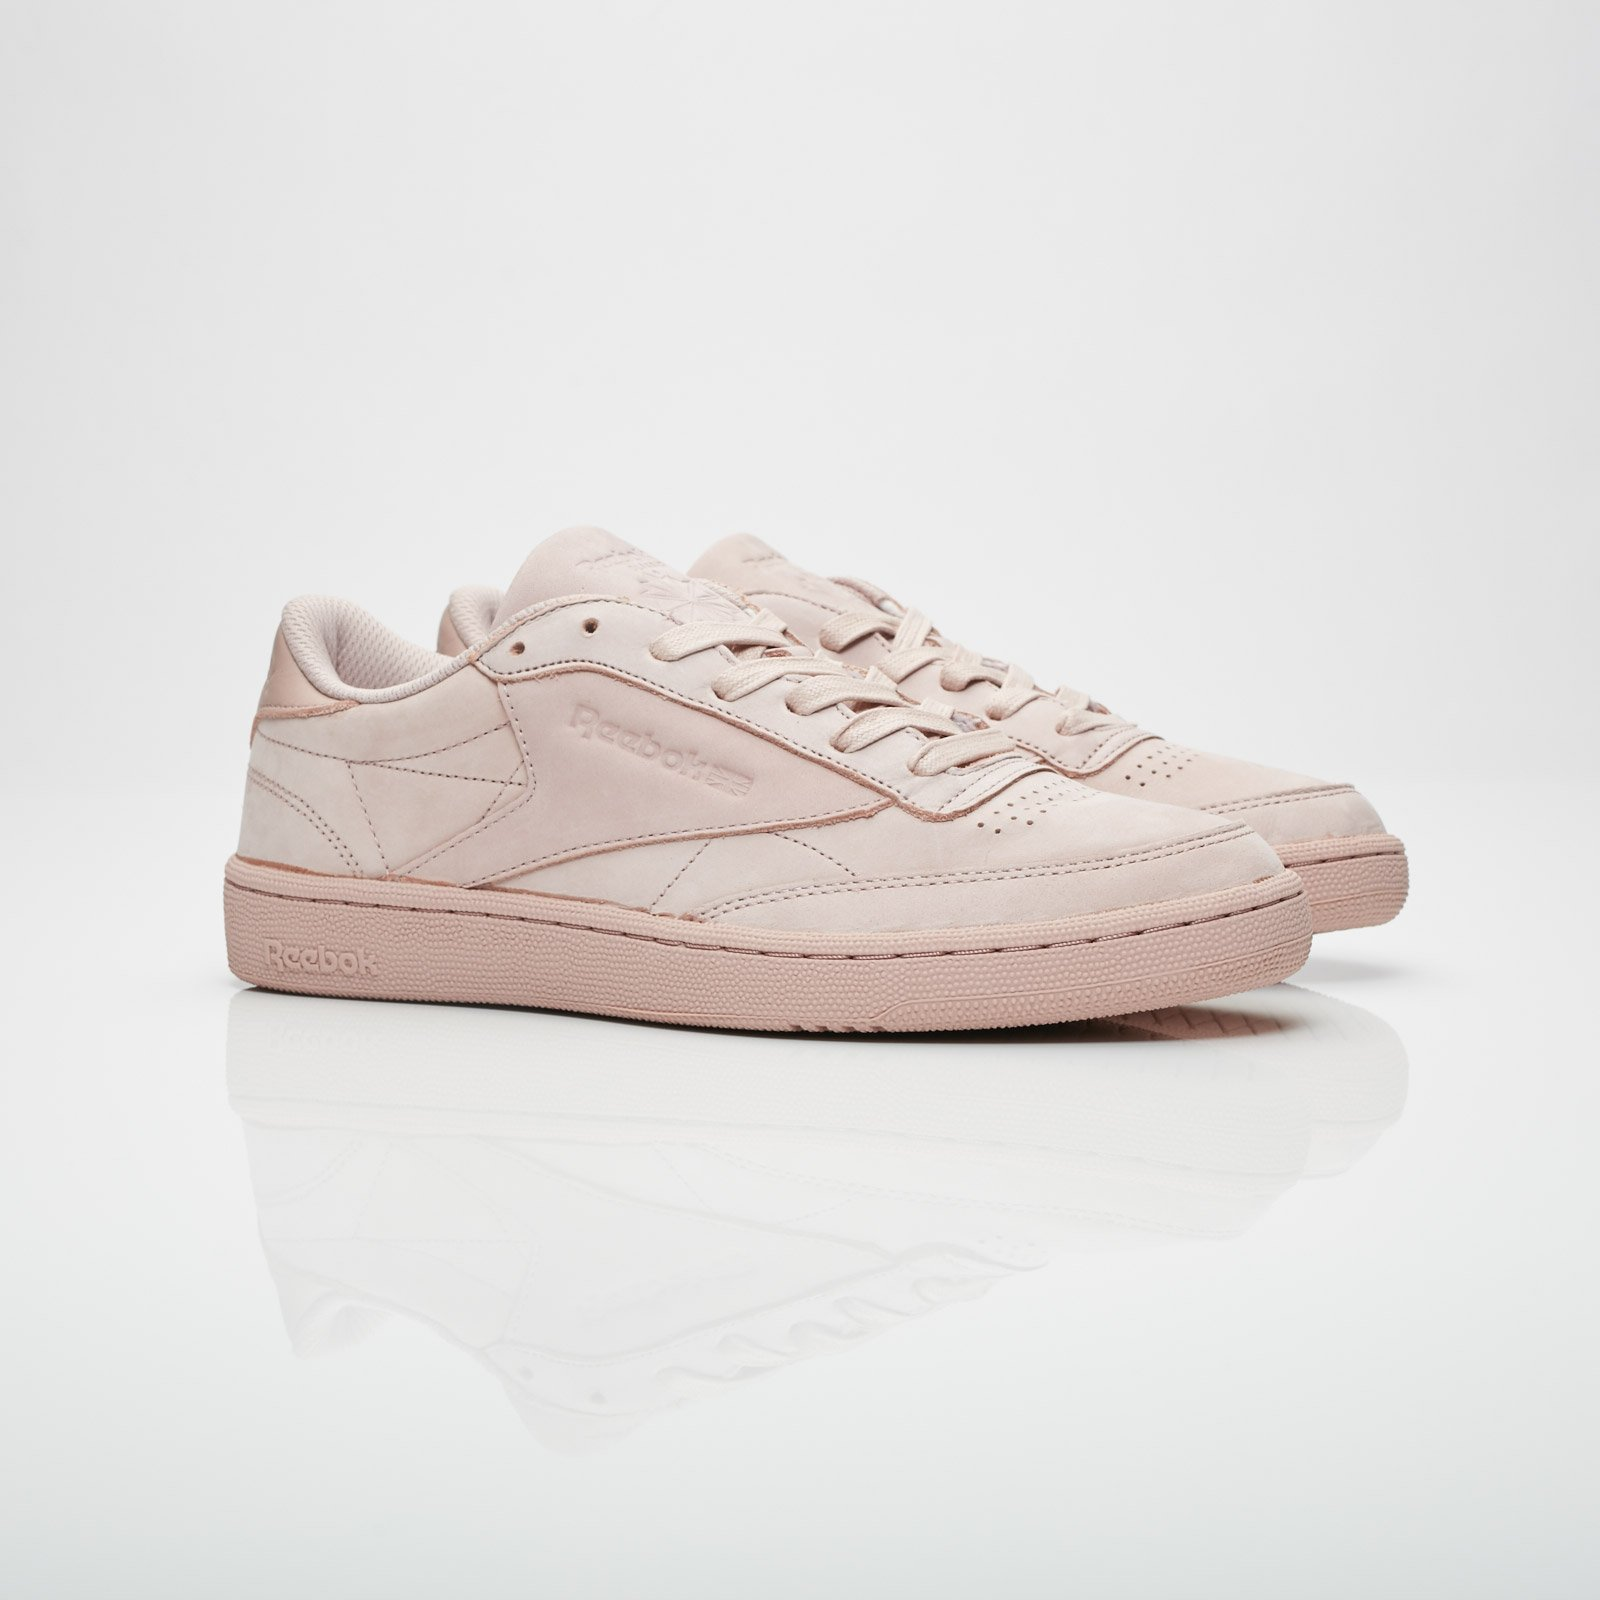 90007c1a0aa97e Reebok Club C 85 RS - Bs7854 - Sneakersnstuff